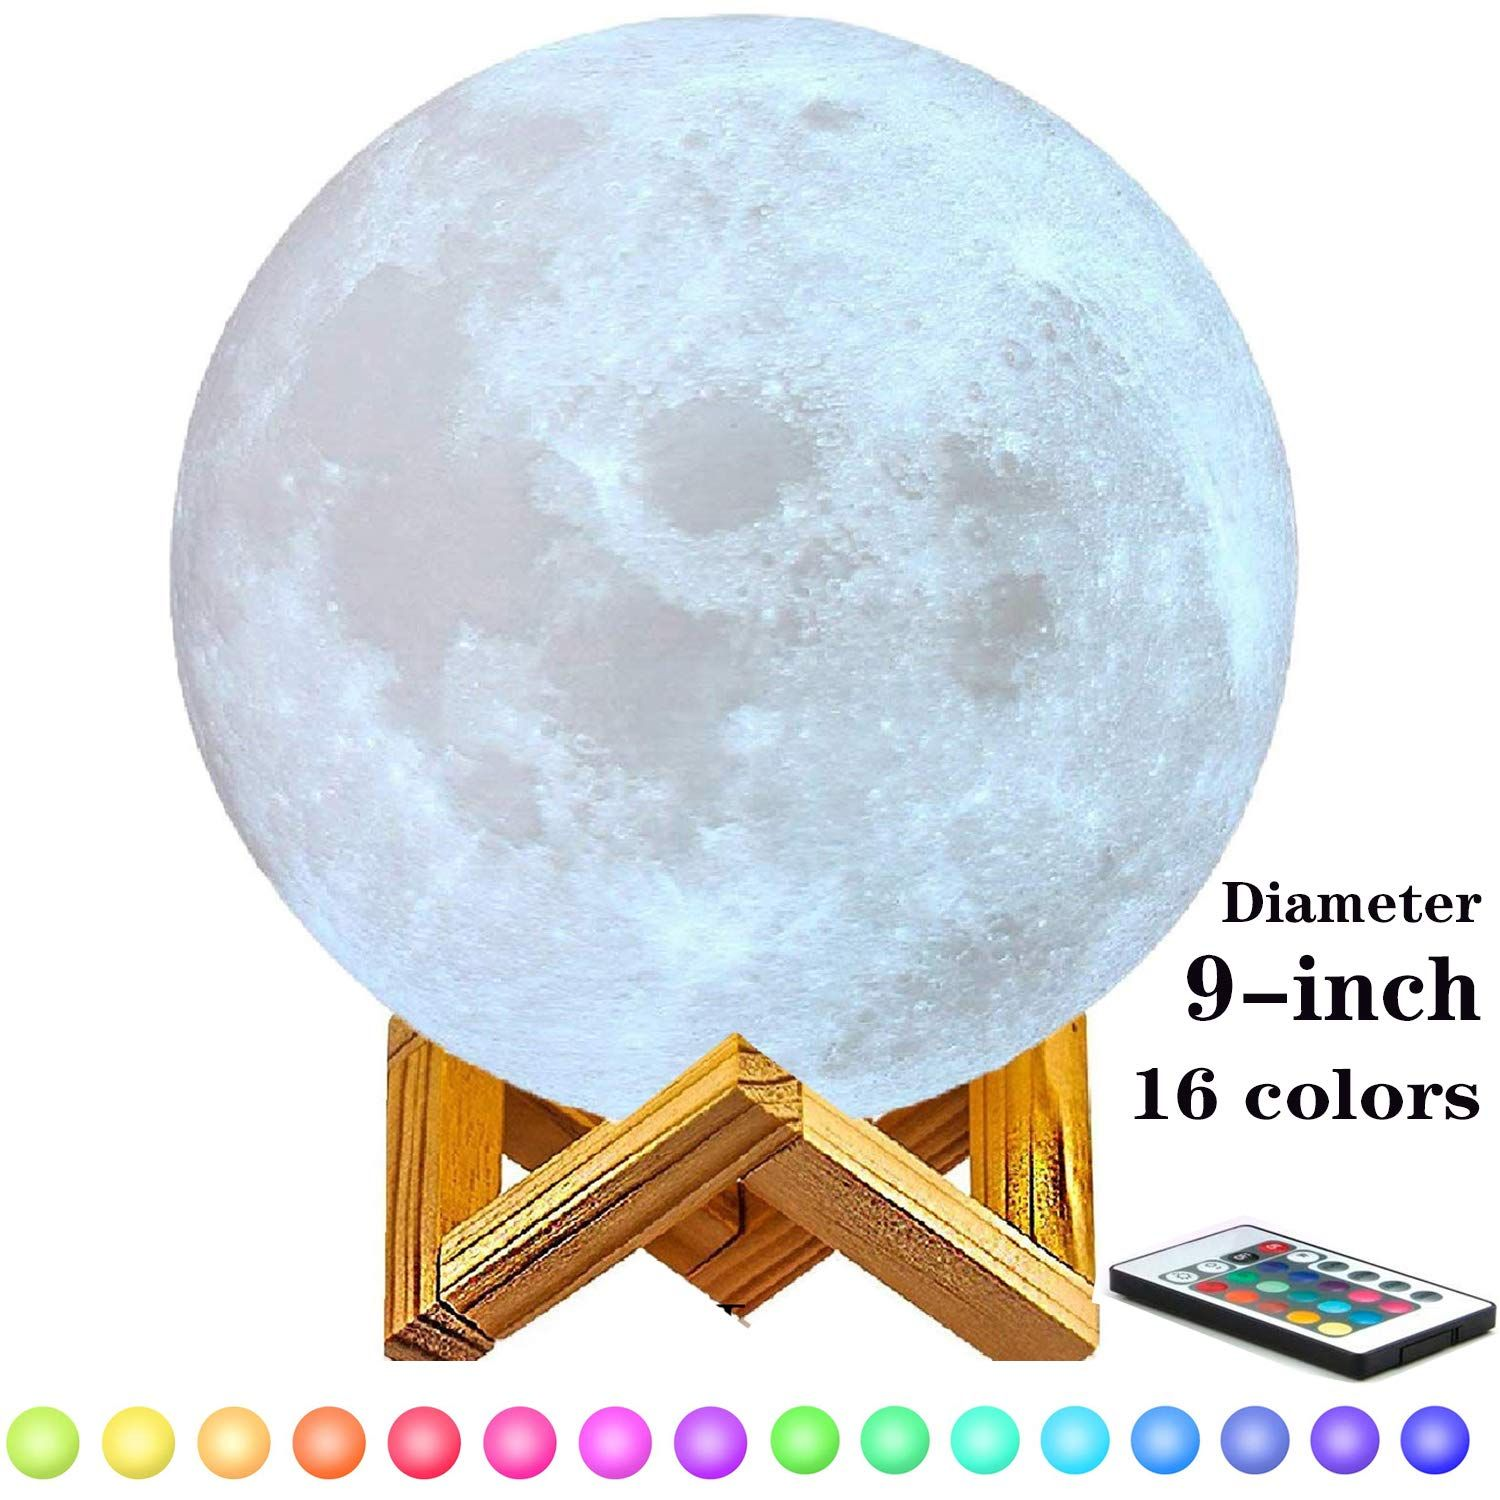 Moon Light Lamps 6 11 3d Printing Moon Lamp With Stand Touch Control And Remote Control With Led 16 Colors Moon Light Lamp Remote Control Touch Control